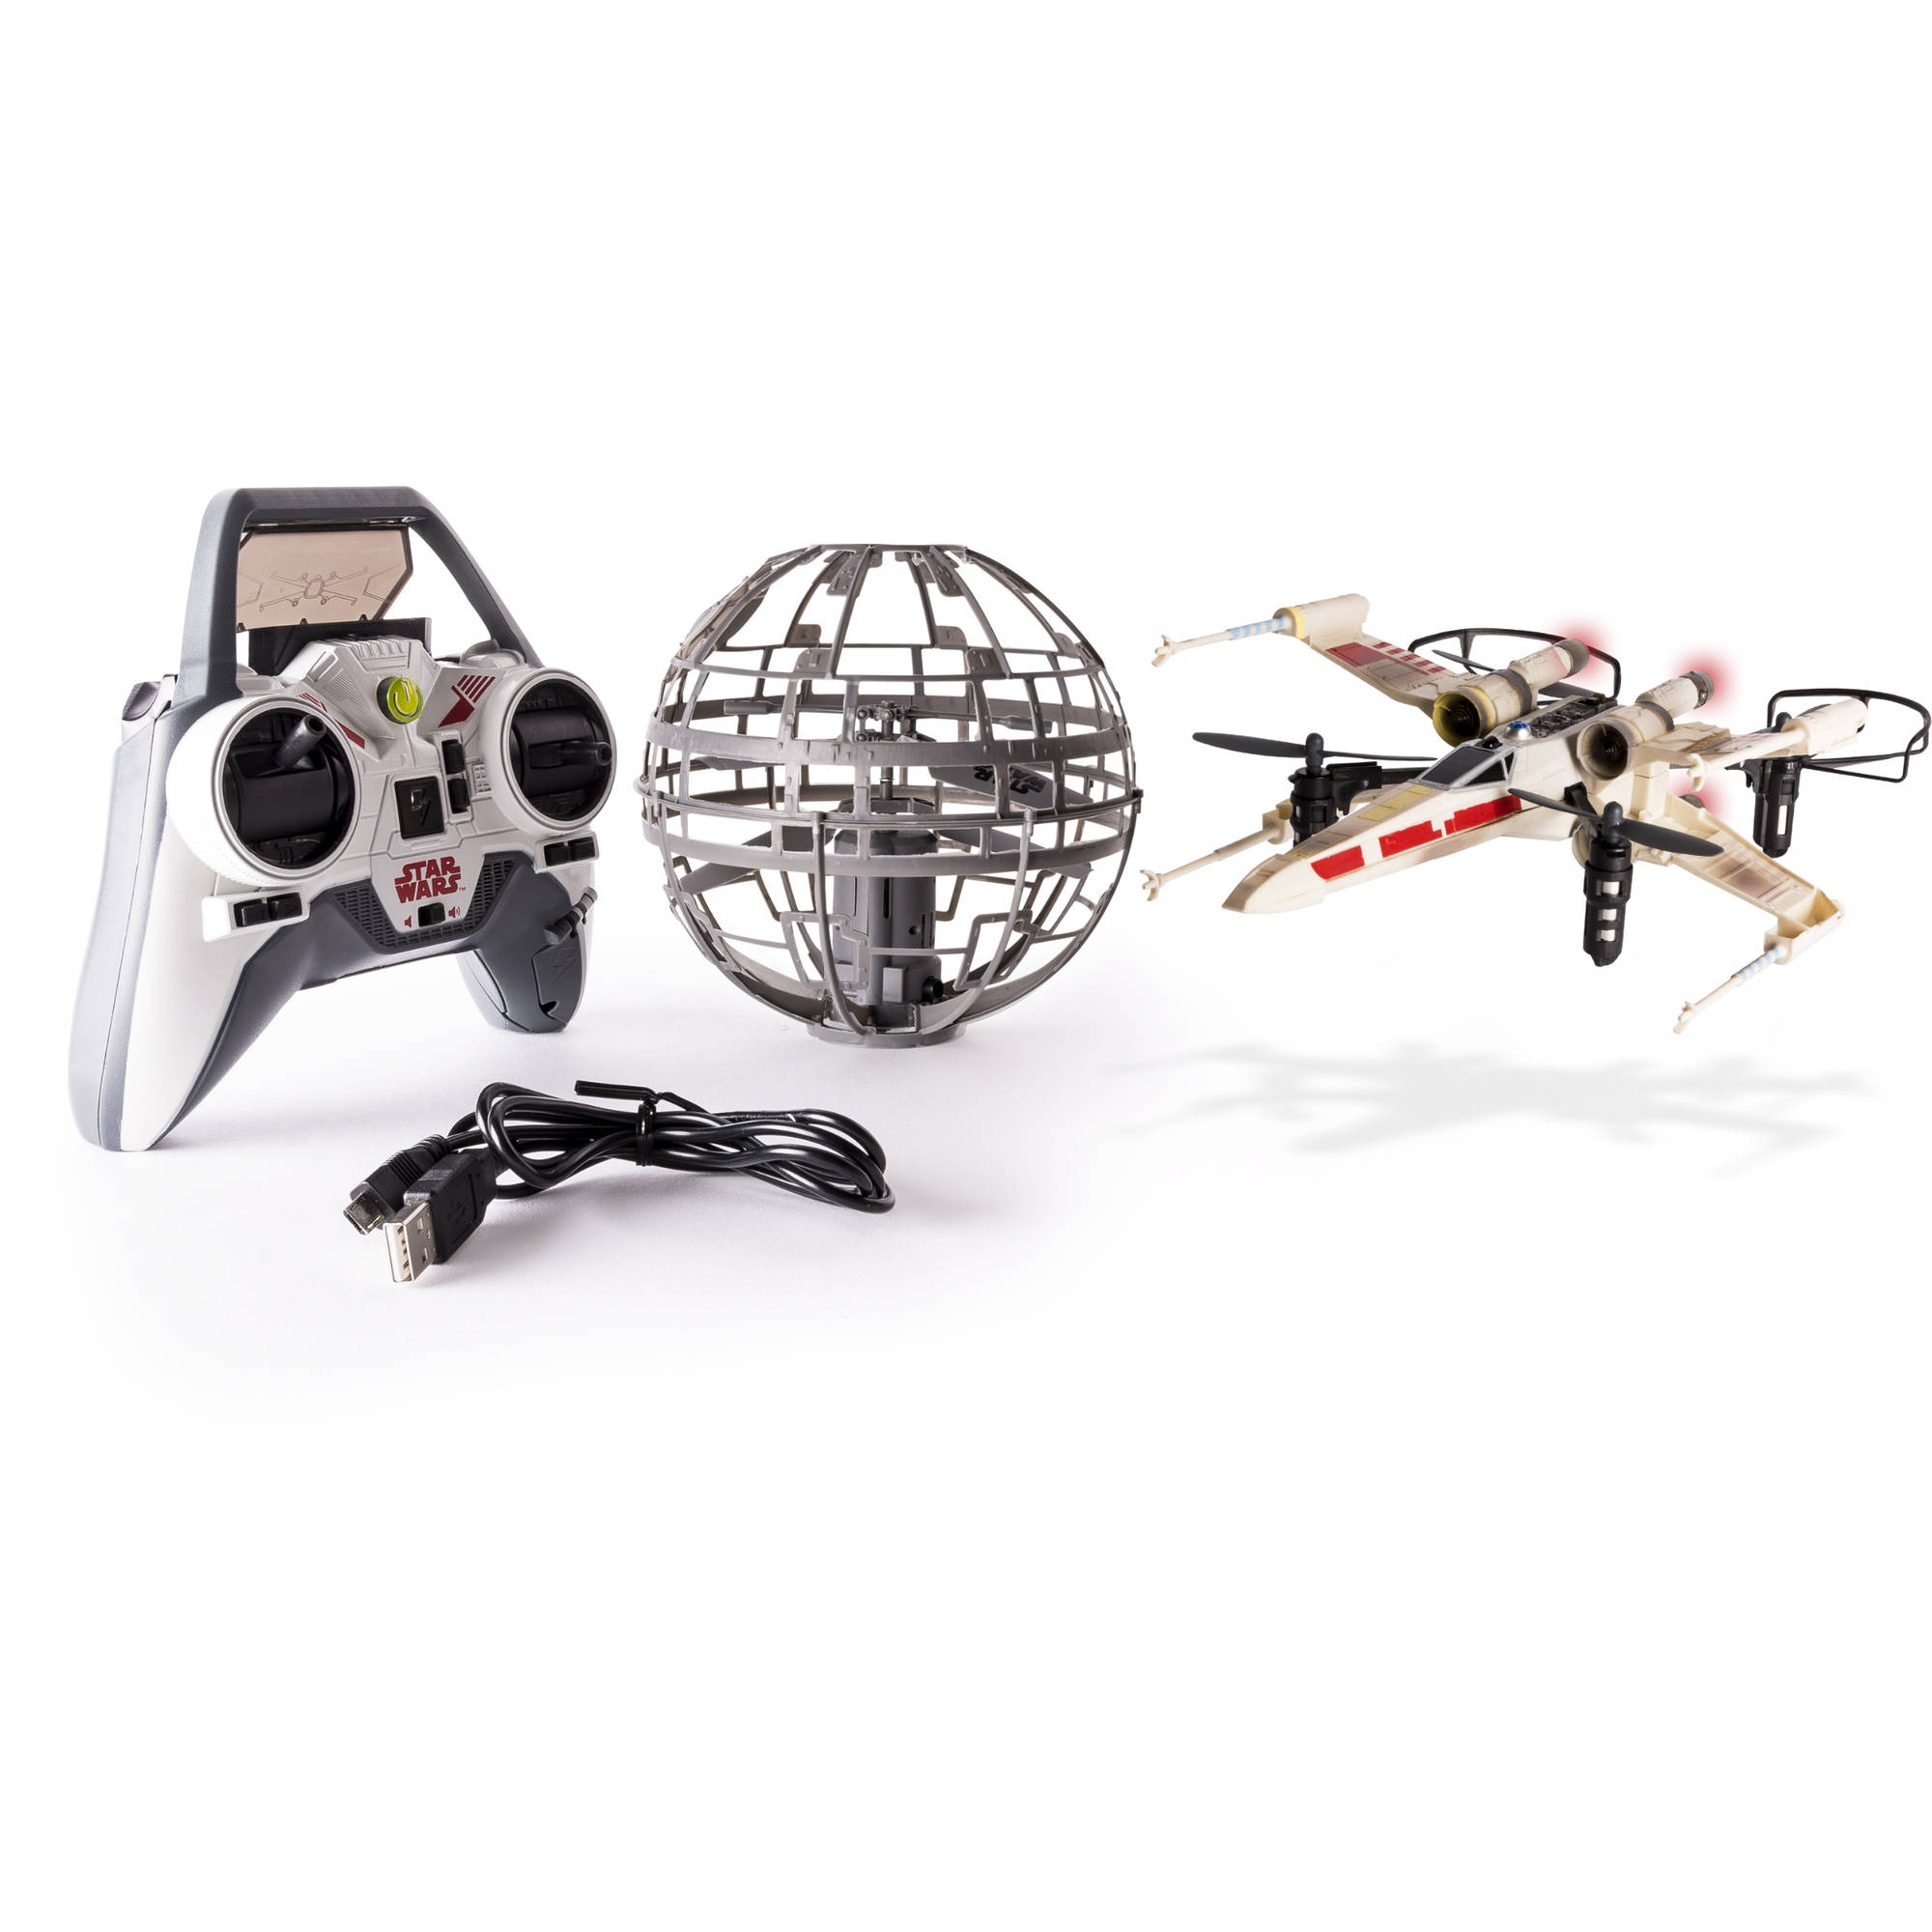 Air Hogs Star Wars, Rogue One X-wing vs. Death Star, Rebel Assault RC Drones